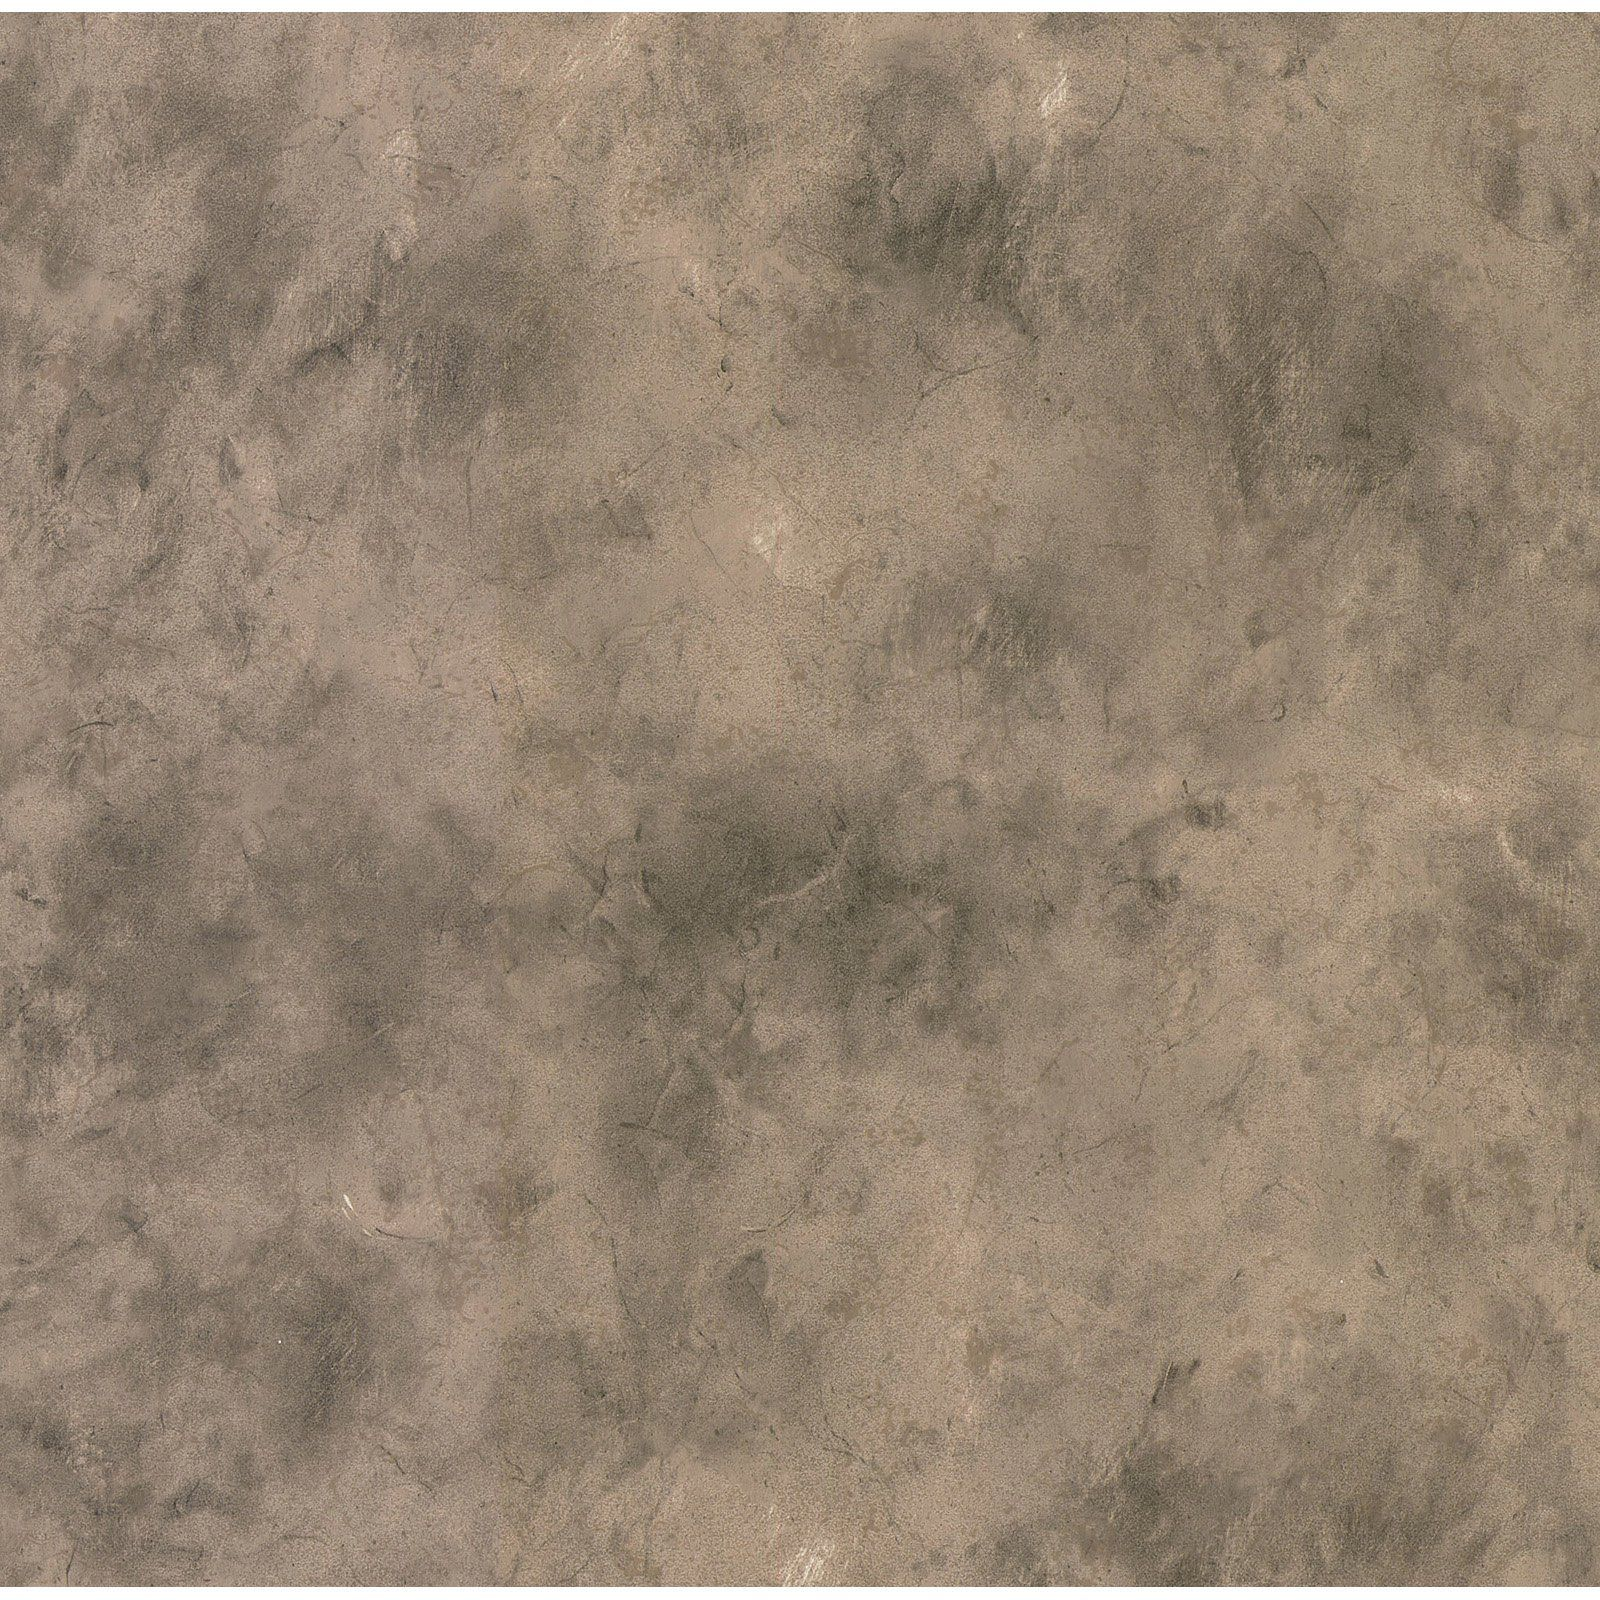 Mirage Ionian Marble Texture Wallpaper Taupe Marble